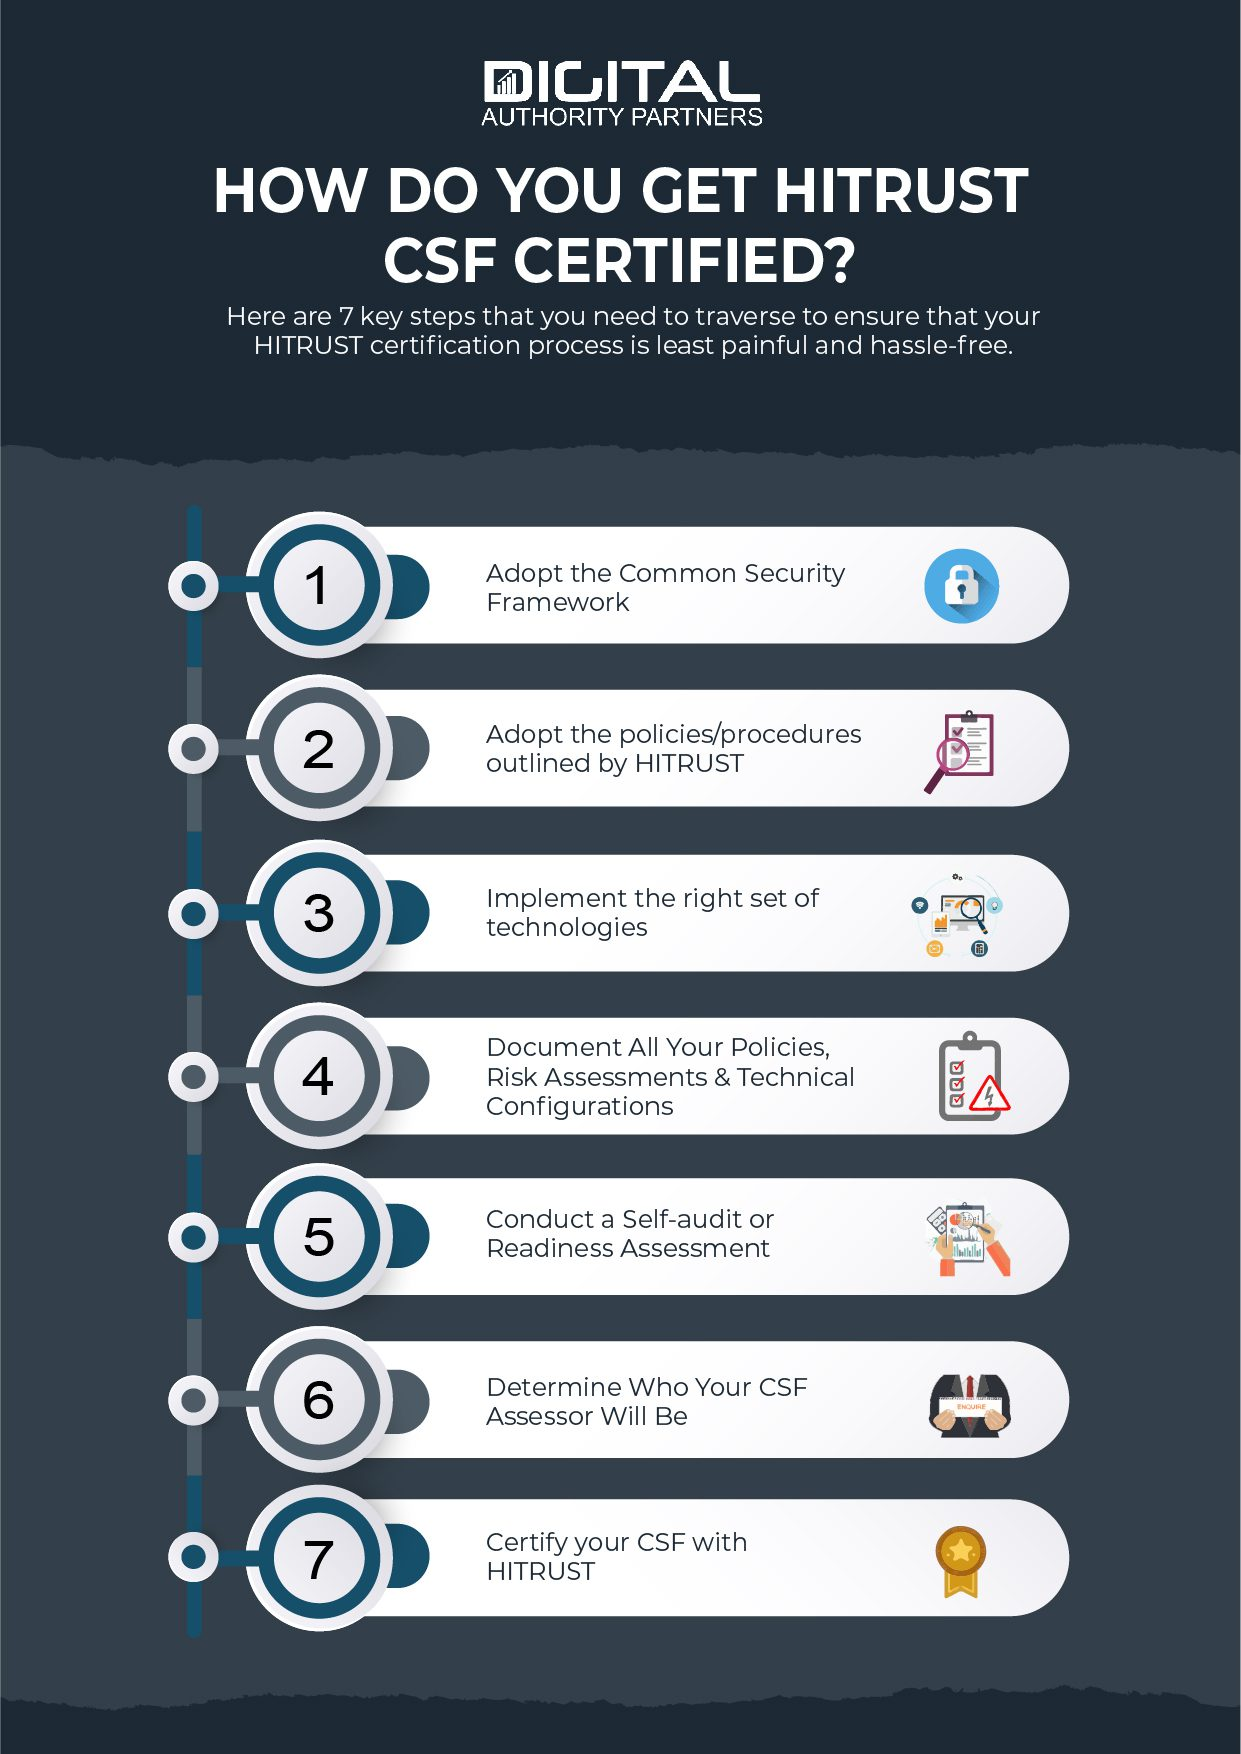 Infographic explaining the steps to get HITRUST CSF certified